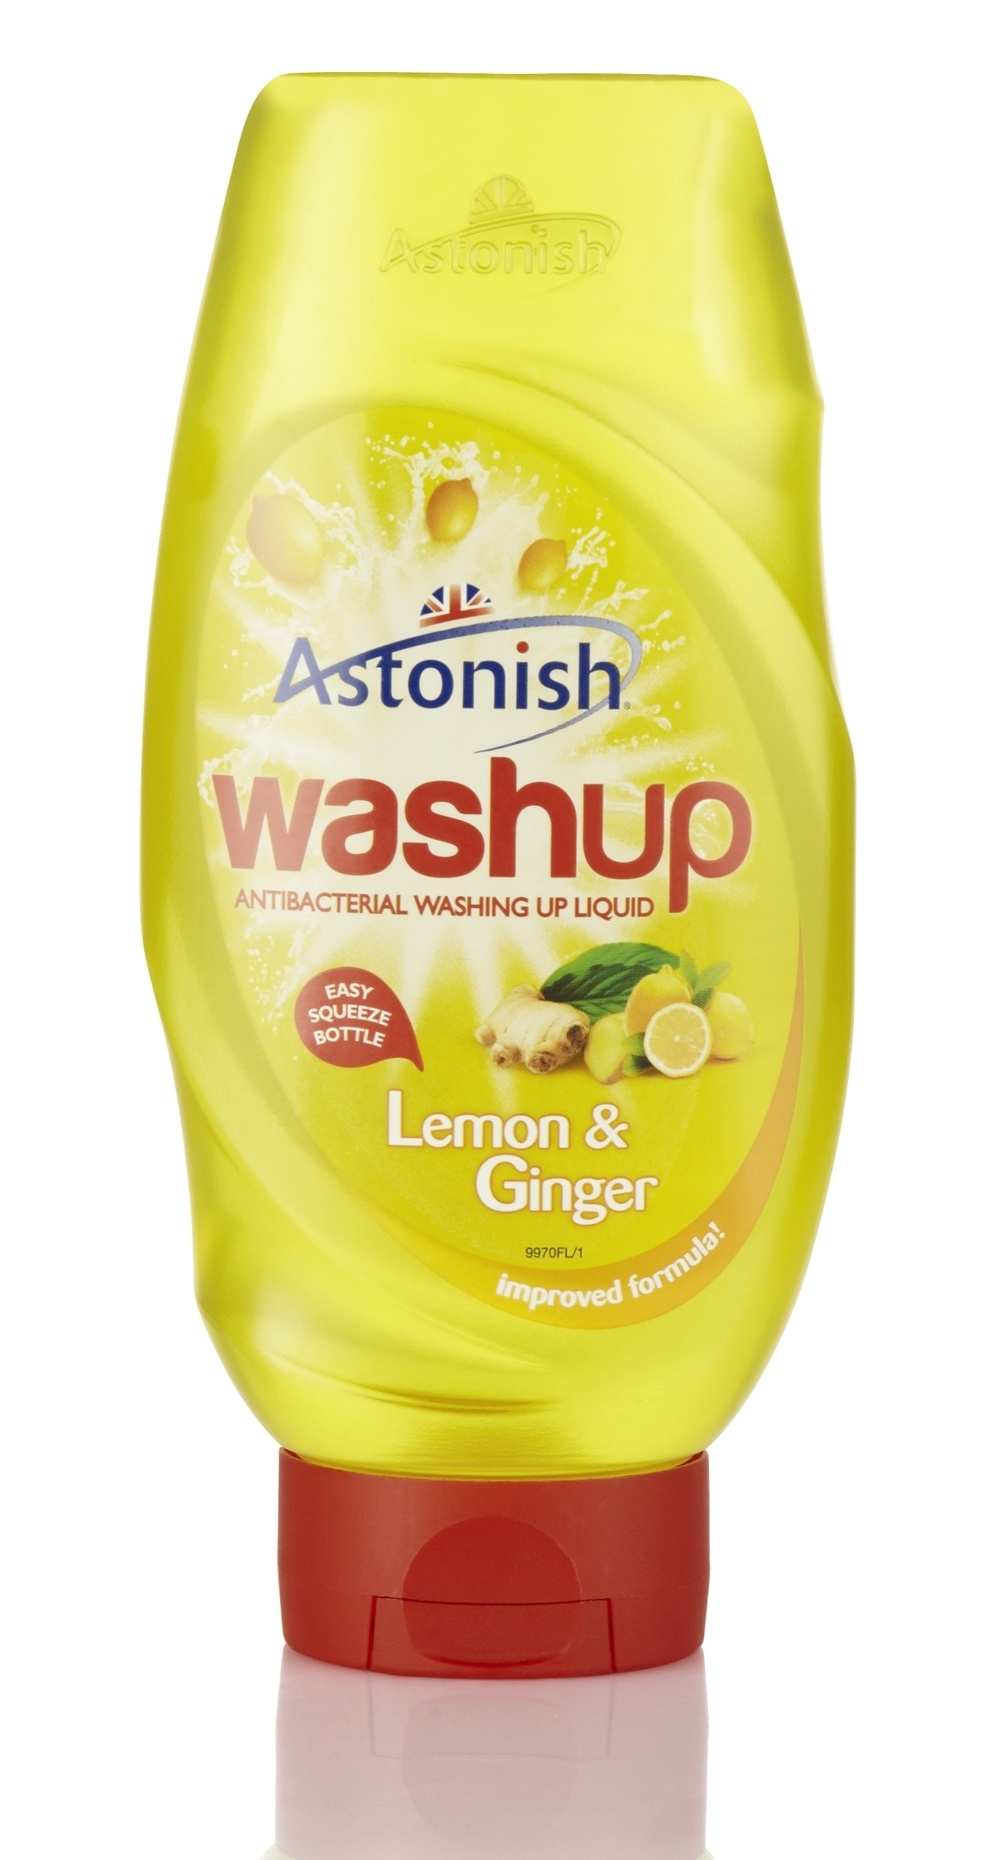 Astonish WashUp Lemon Ginger Washup 600ml.JPG